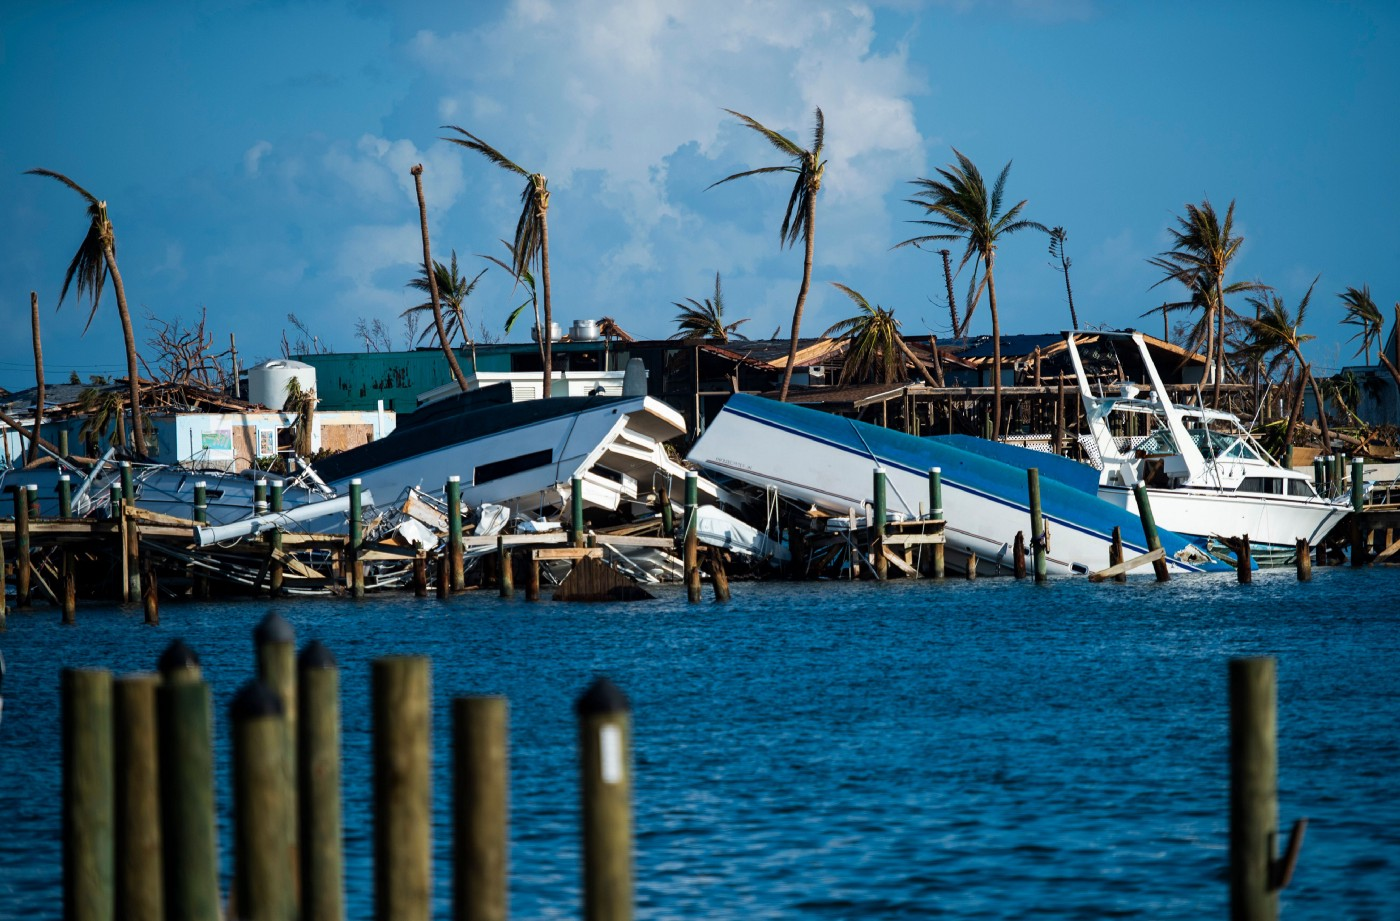 Photo of destroyed boats pushed up against the pier in the aftermath of Hurricane Dorian in Treasure Cay on Abaco Island.